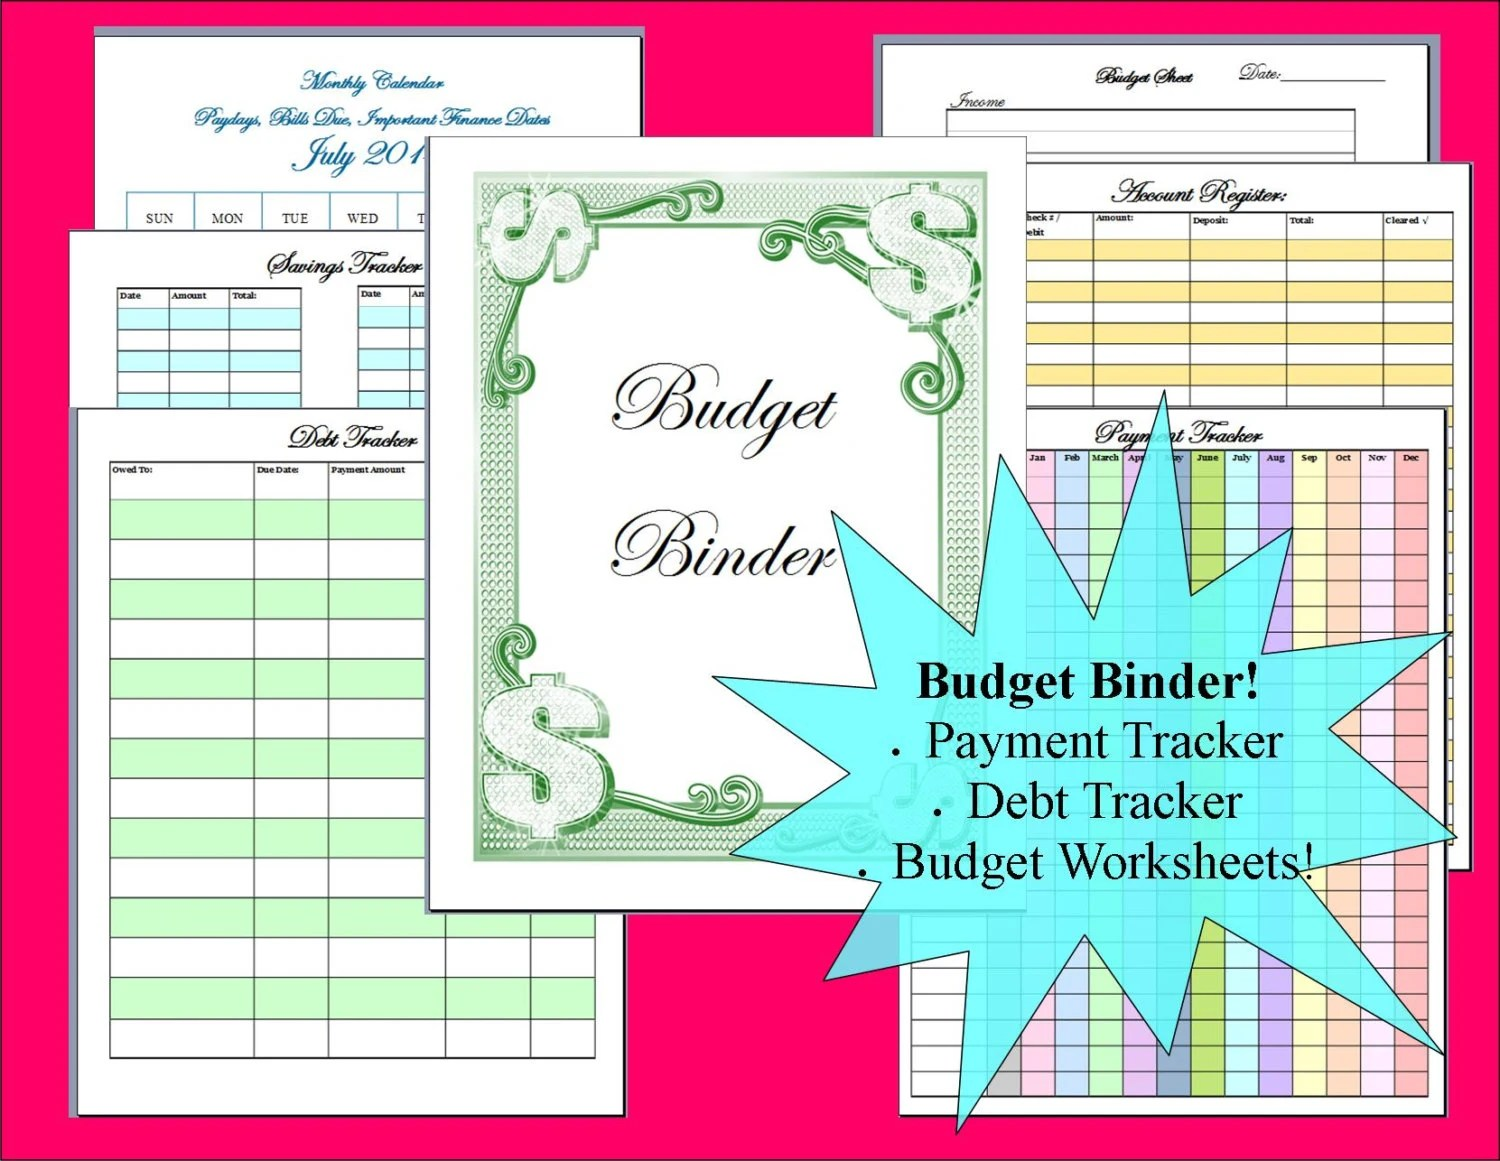 Budget Binder Printable Monthly Calendar With Budget